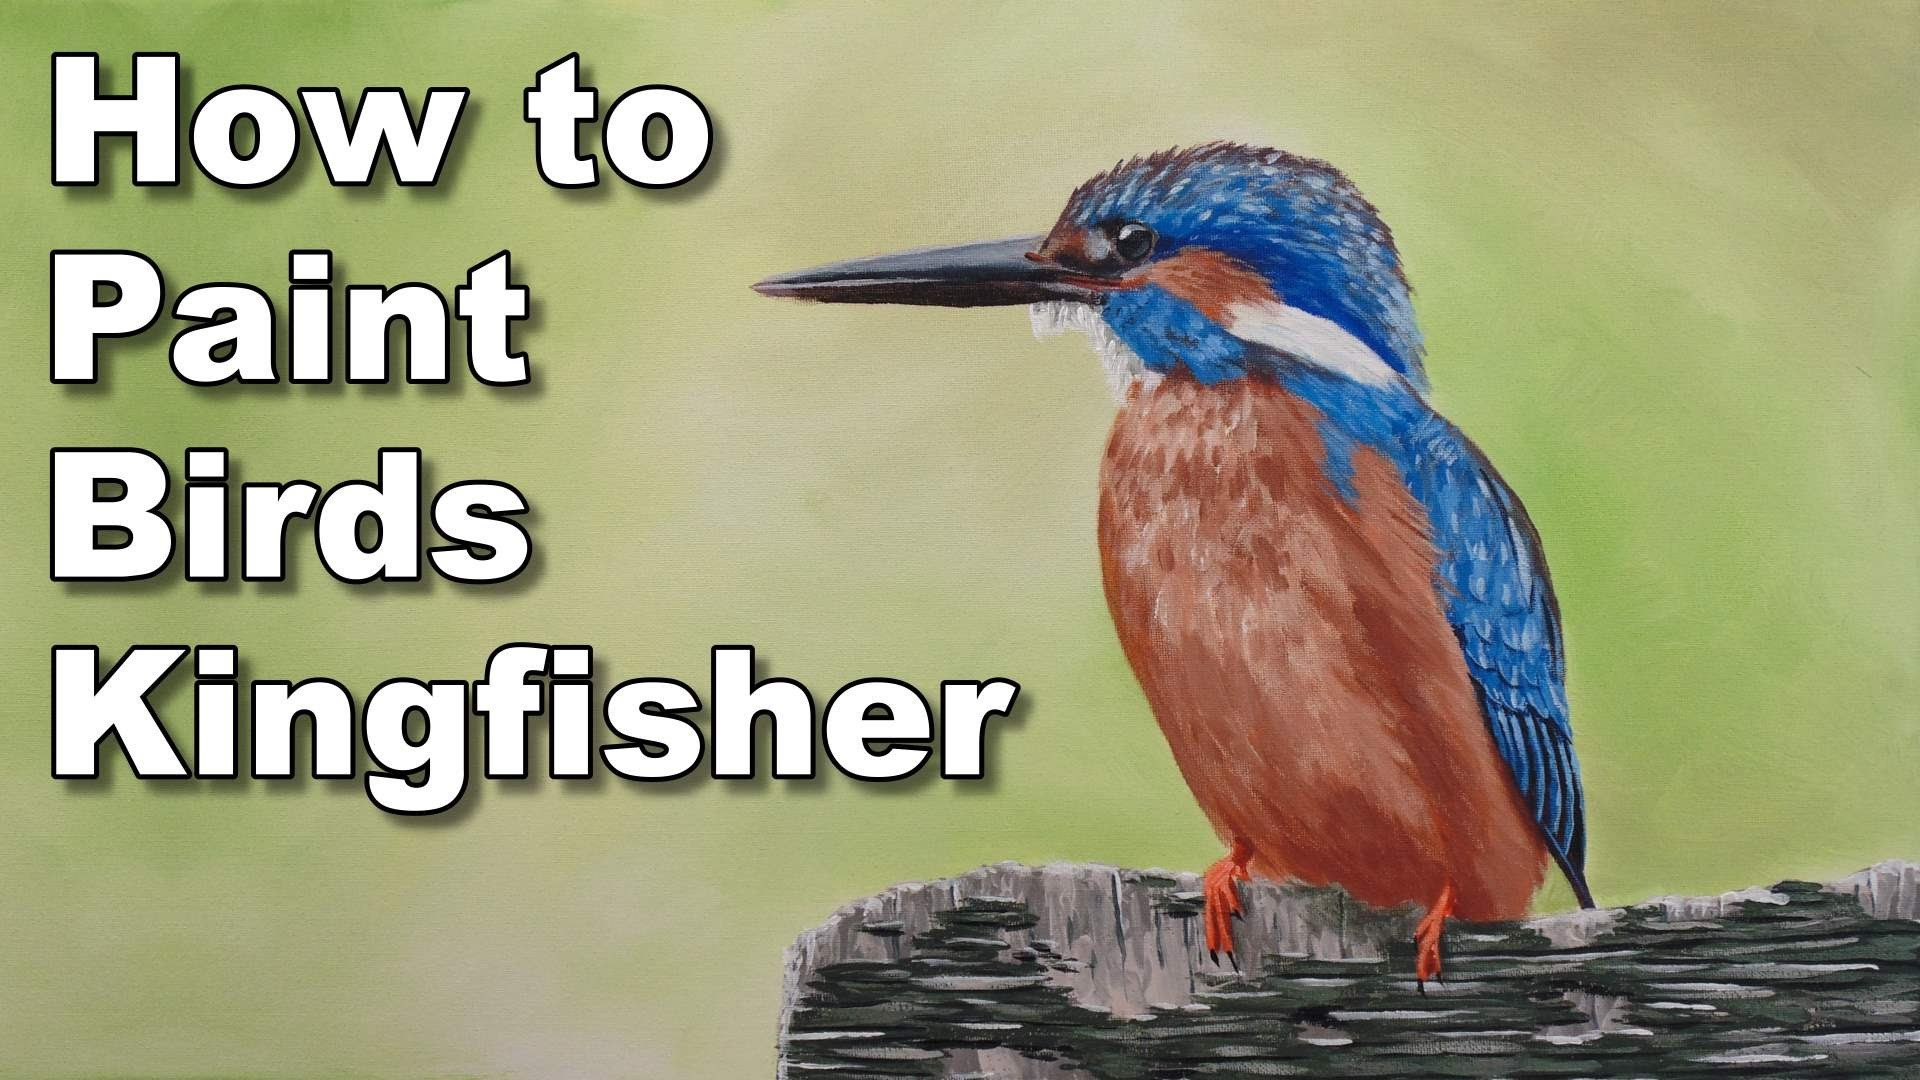 How to paint birds in acrylic kingfisher time lapse painting lesson